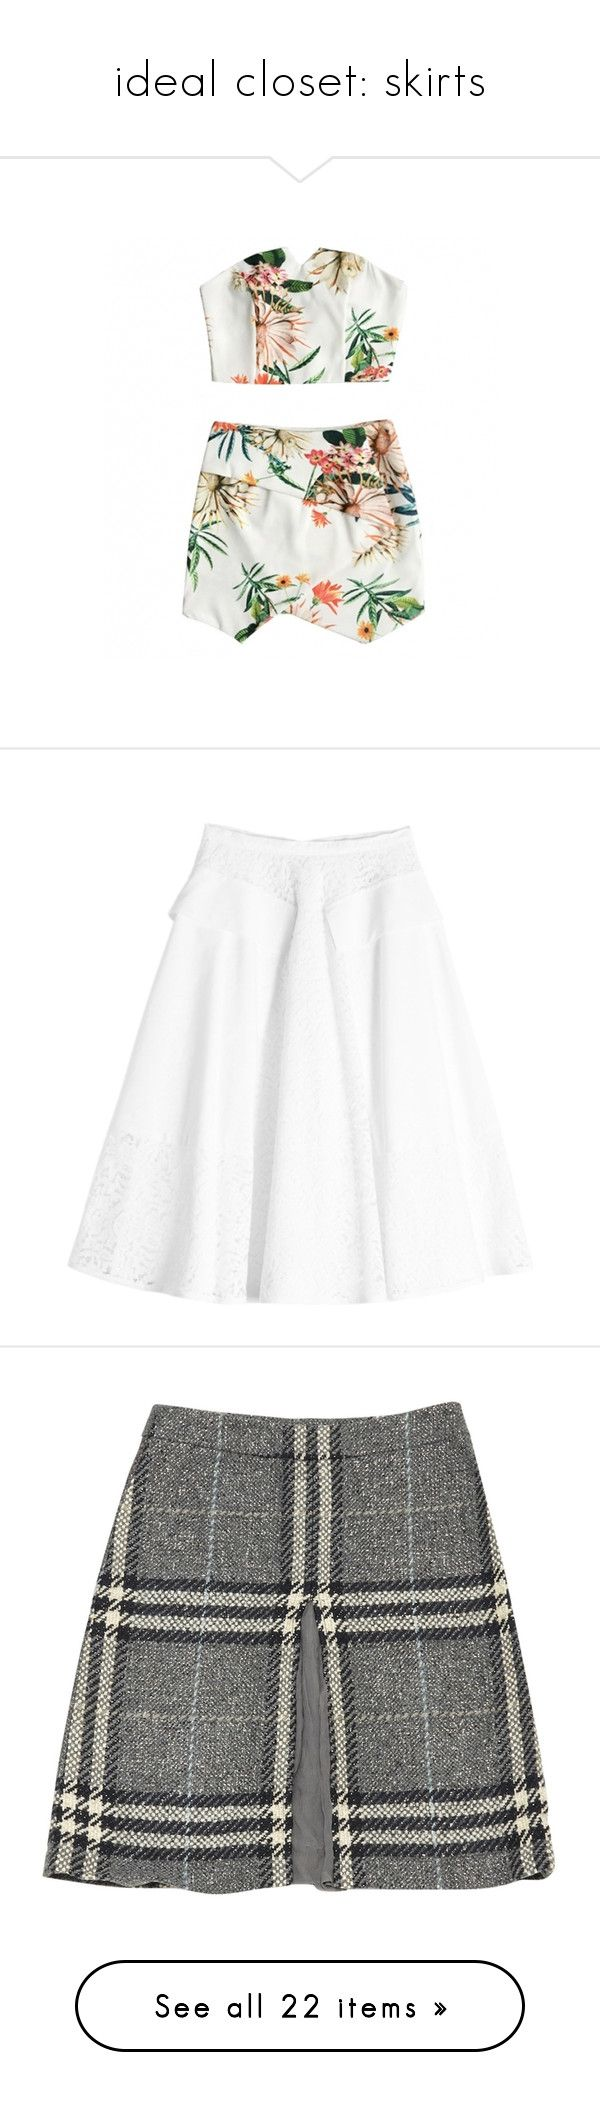 """""""ideal closet: skirts"""" by stardewplant ❤ liked on Polyvore featuring dresses, skirts, tops, two piece, white two piece, floral two piece, white, white skater skirt, white knee length skirt and lace skater skirt"""